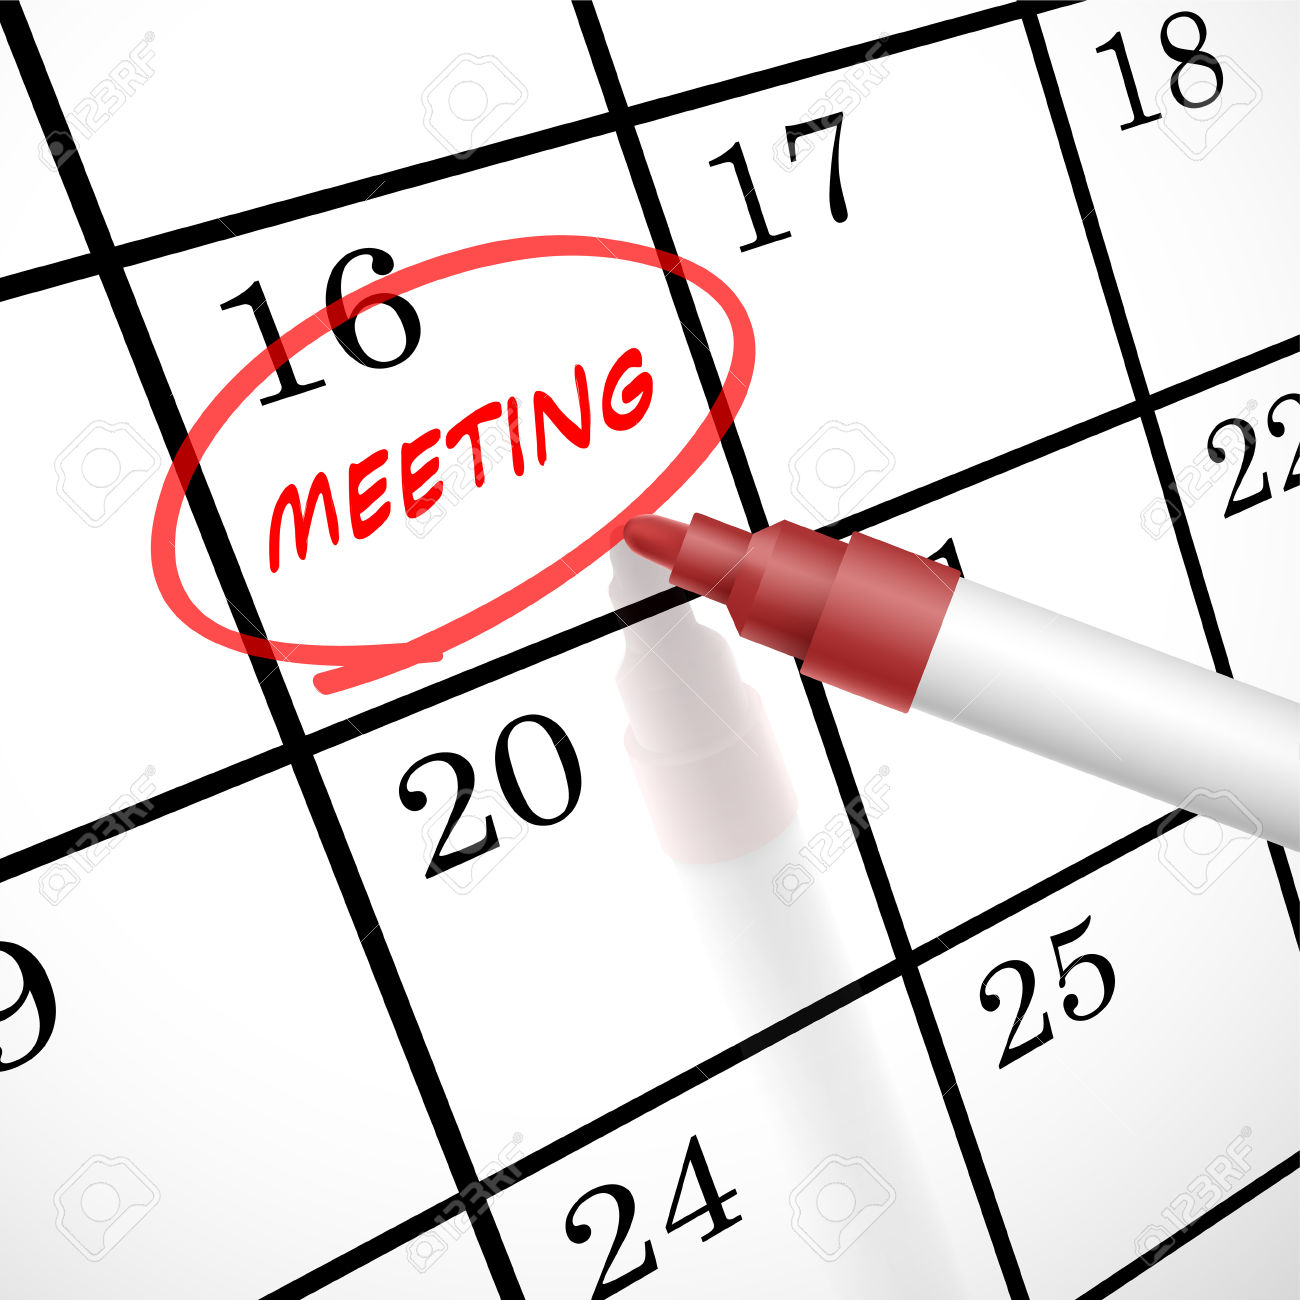 meeting word circle marked on a calendar